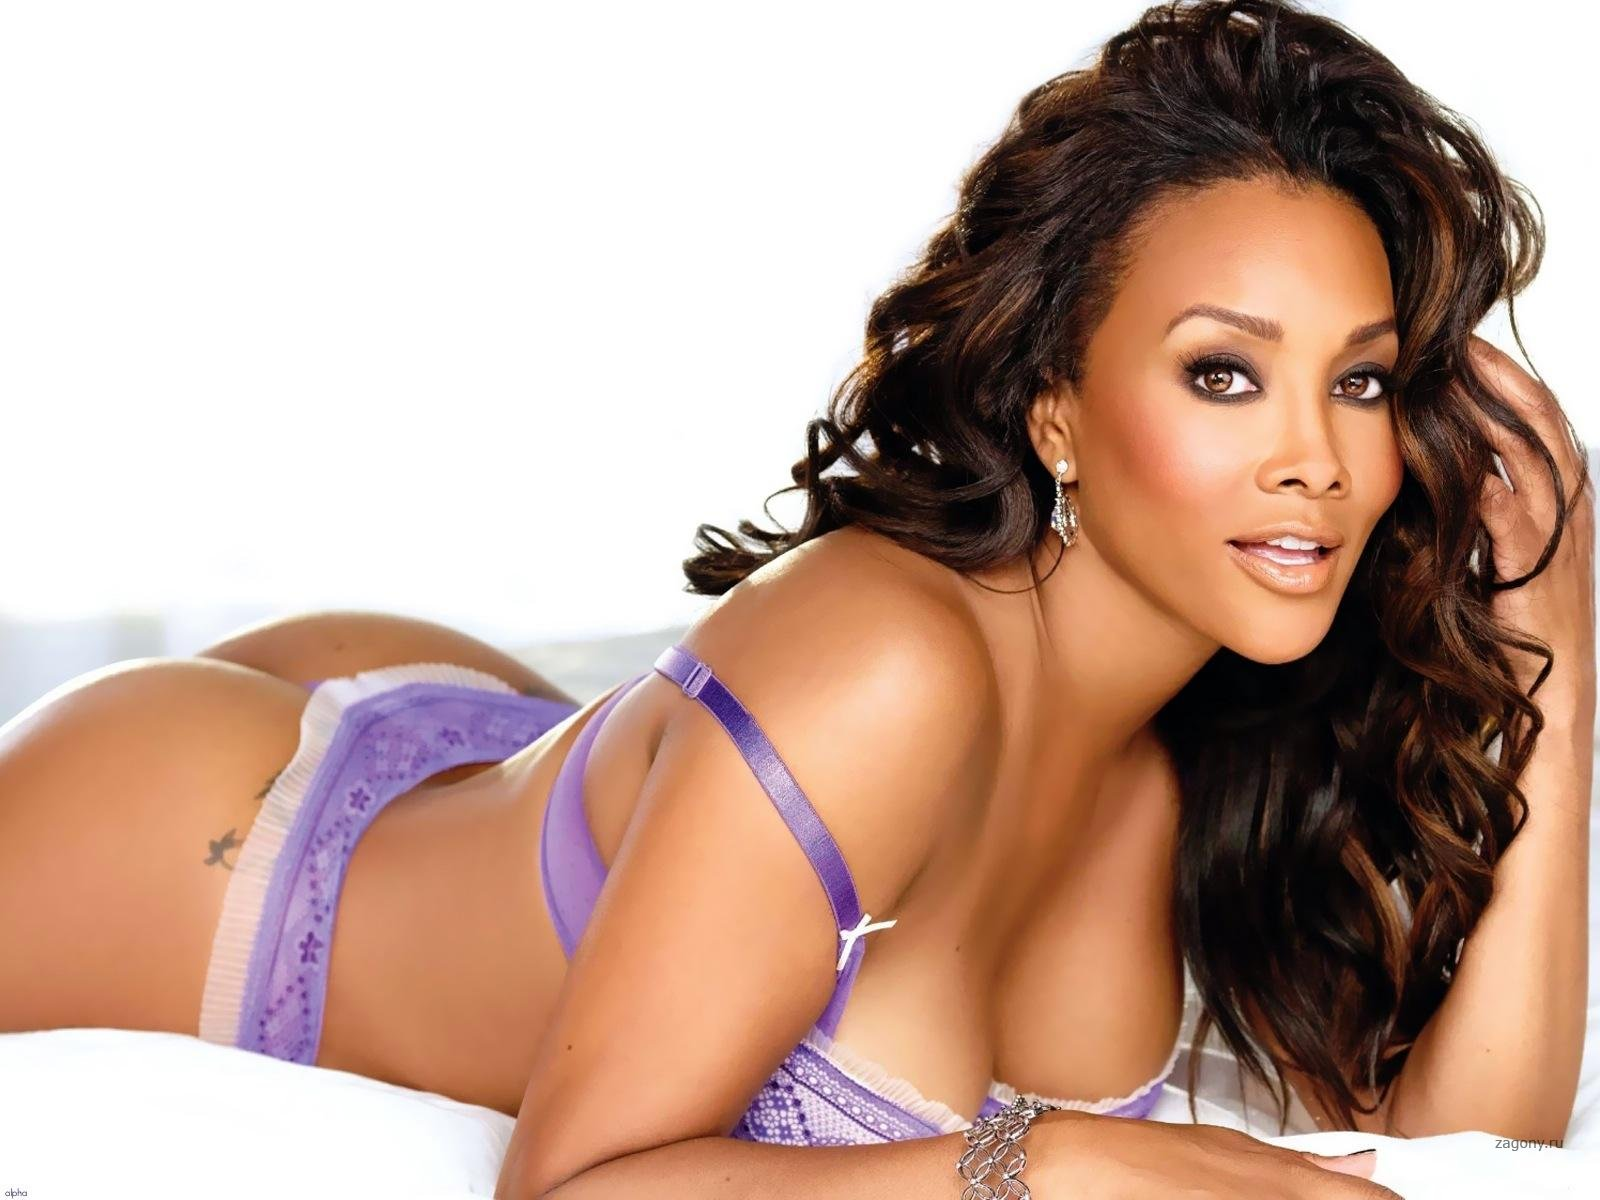 Star sparxxx vivica fox topless galleries tits pussy